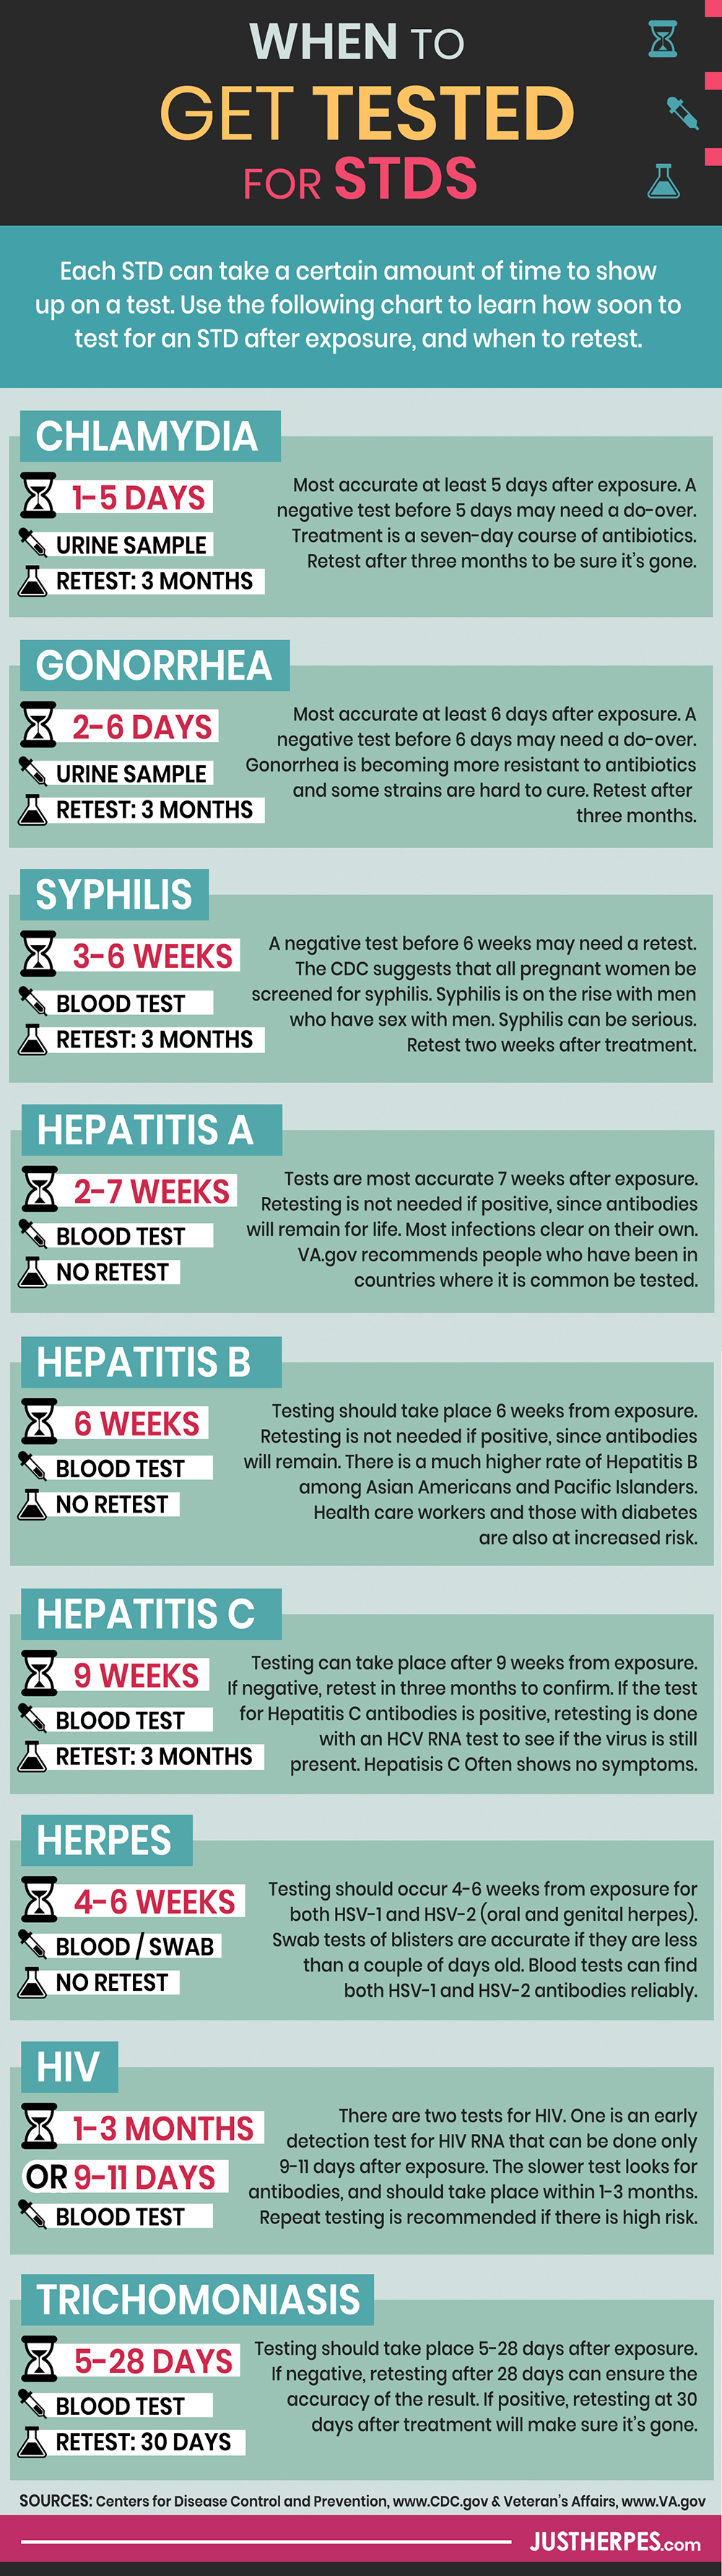 an infographic listing when to get tested for stds and how often